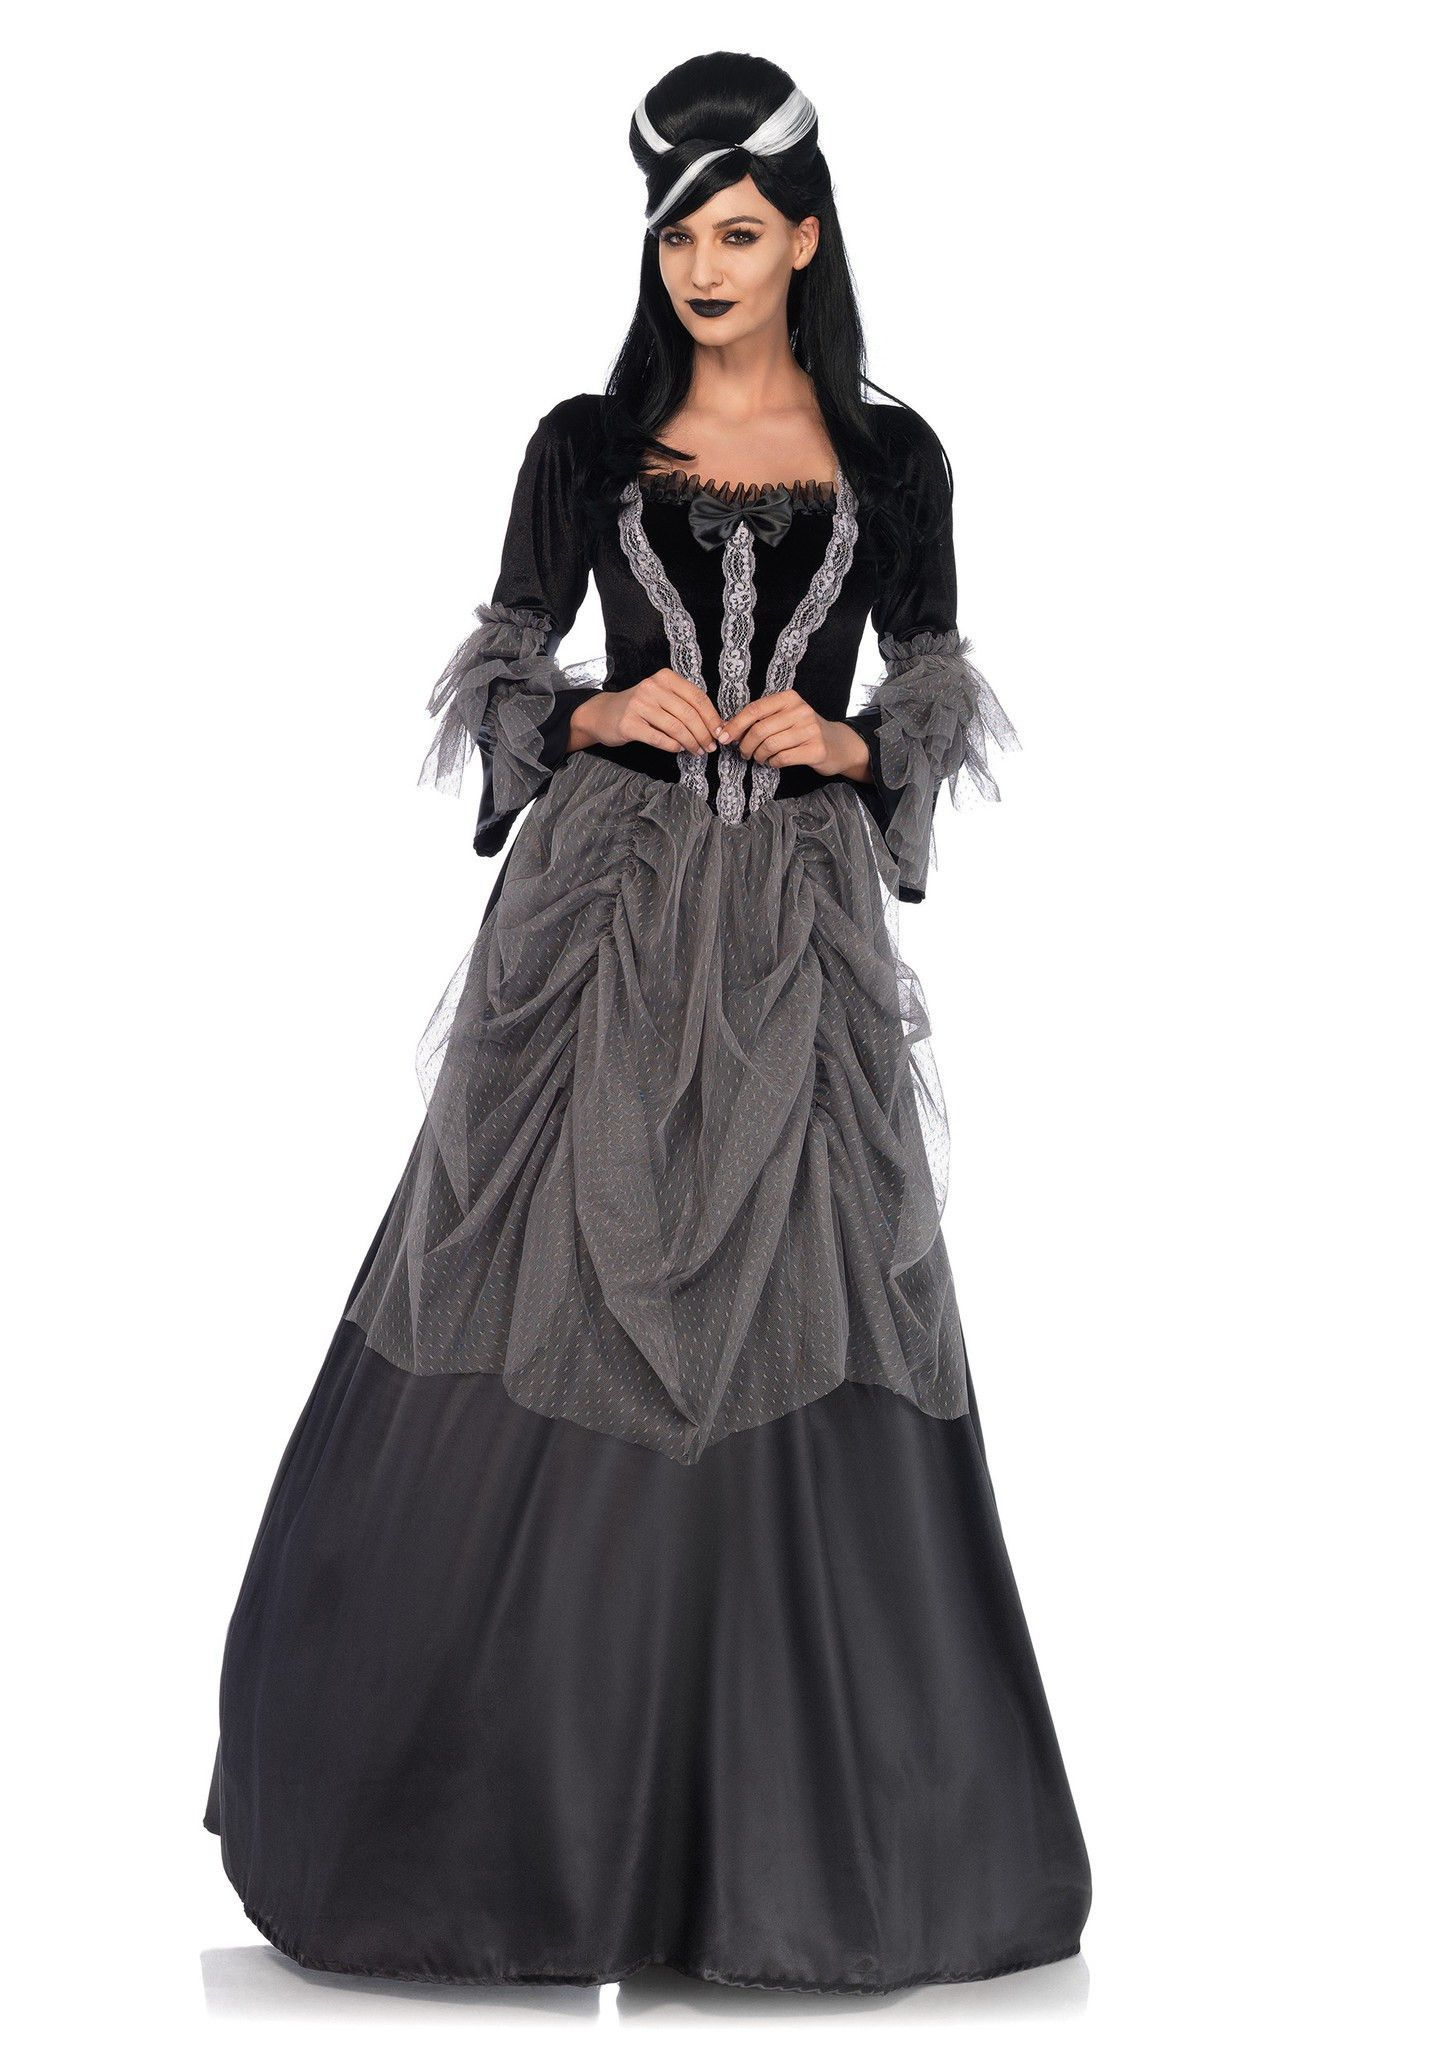 Velvet Victorian Ball Gown Costume | Victorian ball gowns, Costumes ...